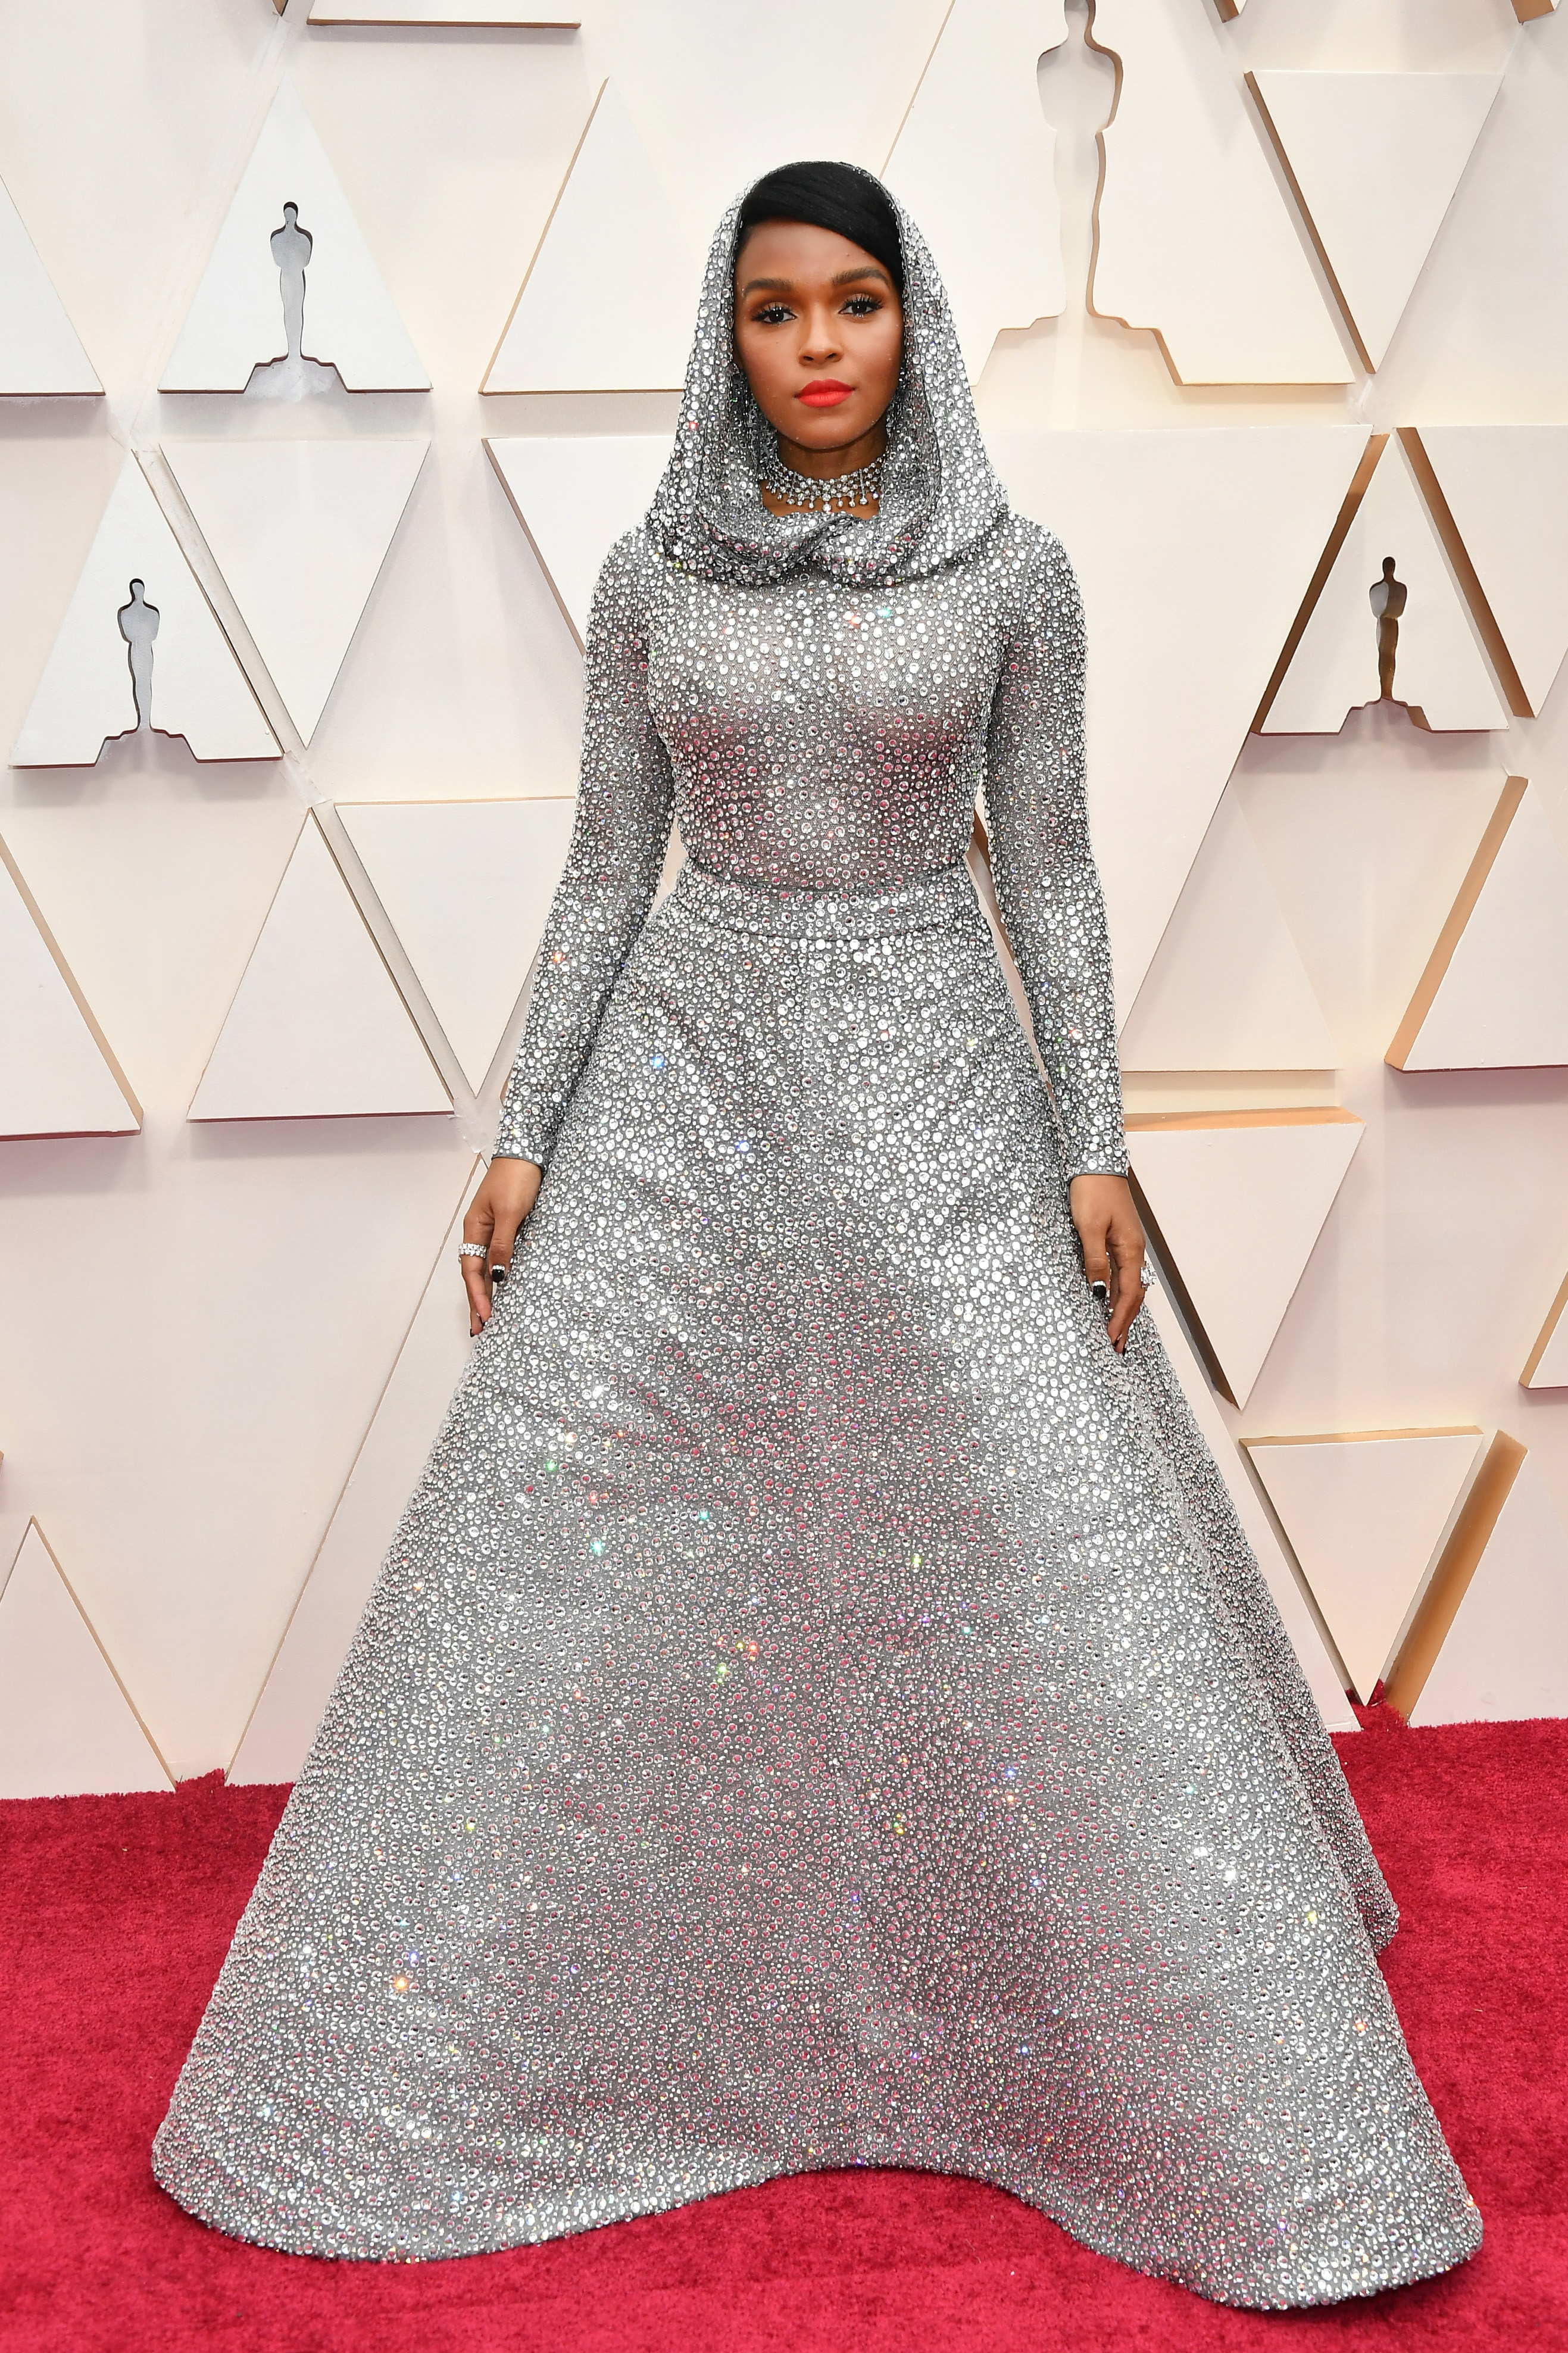 HOLLYWOOD, CALIFORNIA - FEBRUARY 09: Janelle Monáe attends the 92nd Annual Academy Awards at Hollywood and Highland on February 09, 2020 in Hollywood, California. (Photo by Amy Sussman/Getty Images)